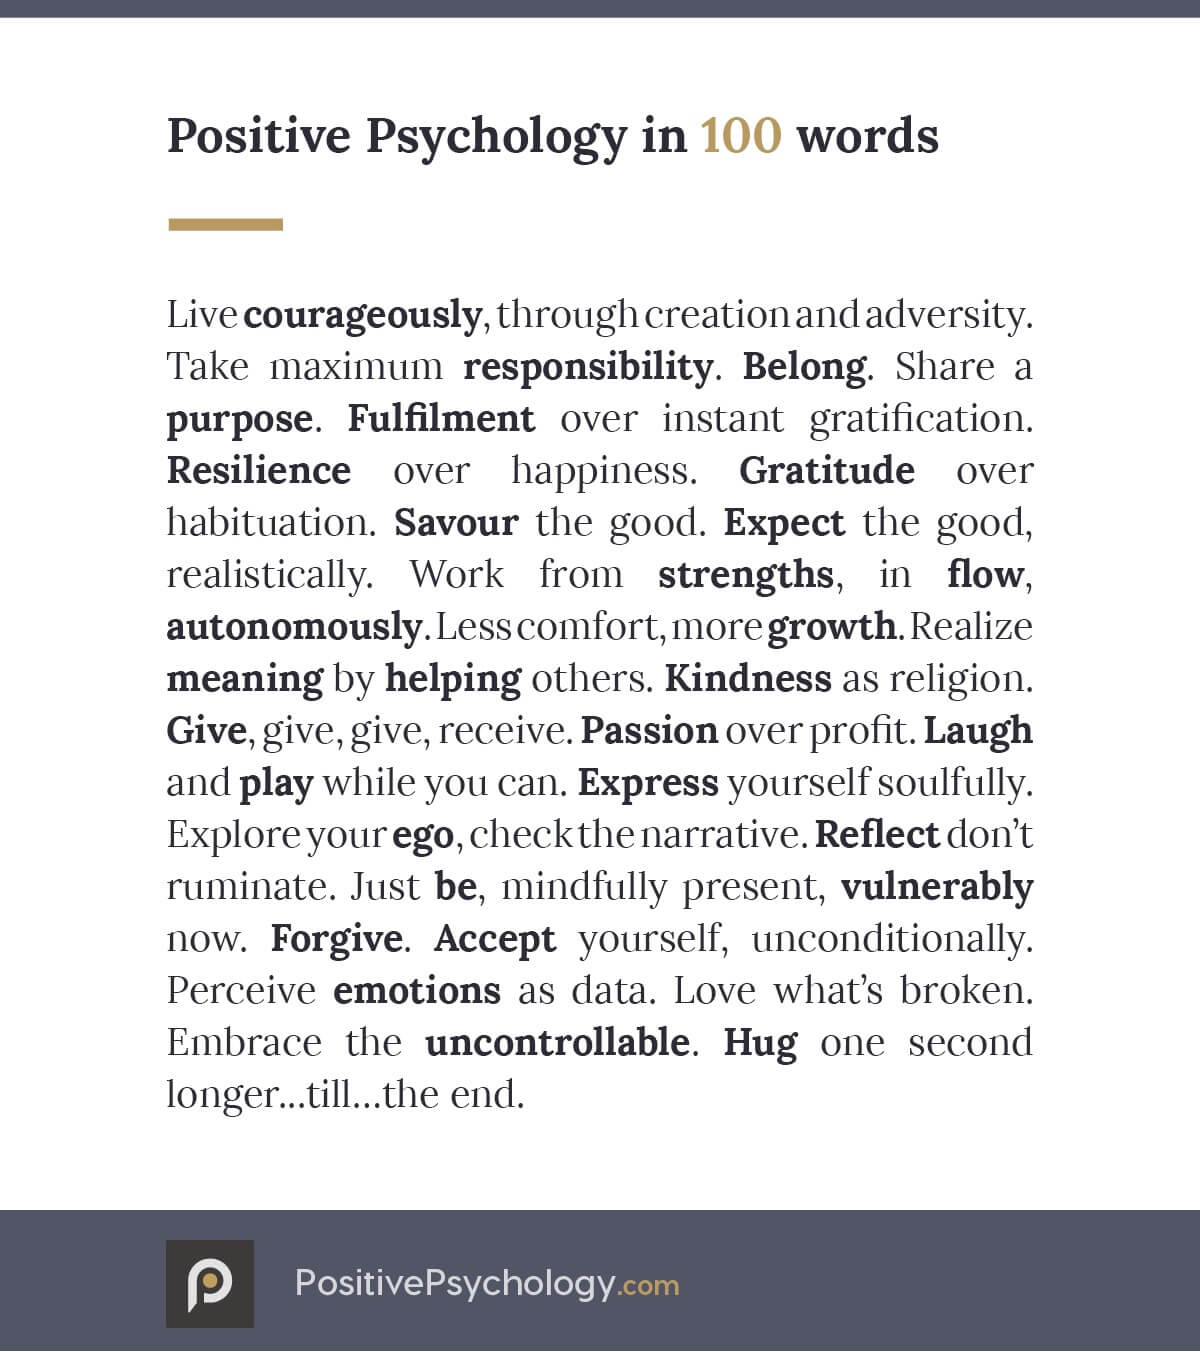 Positive Psychology in a 100 words